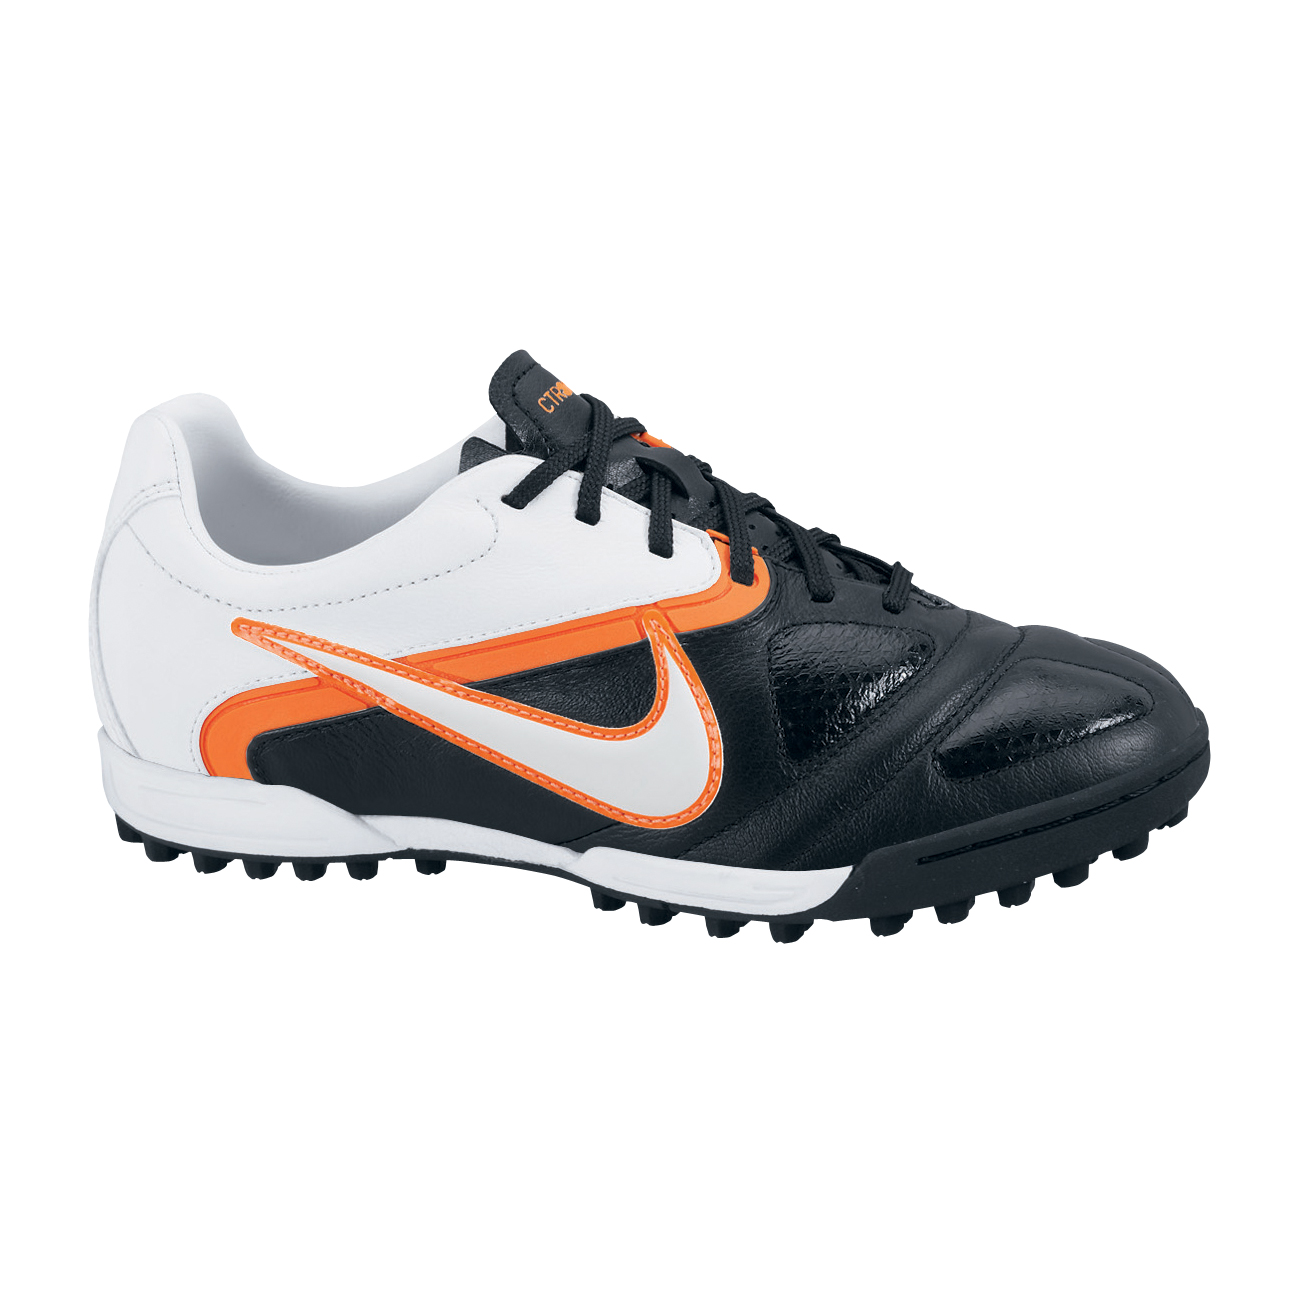 Nike CTR360 Libretto II Astroturf Trainers - Black/White/Total Orange - Kids